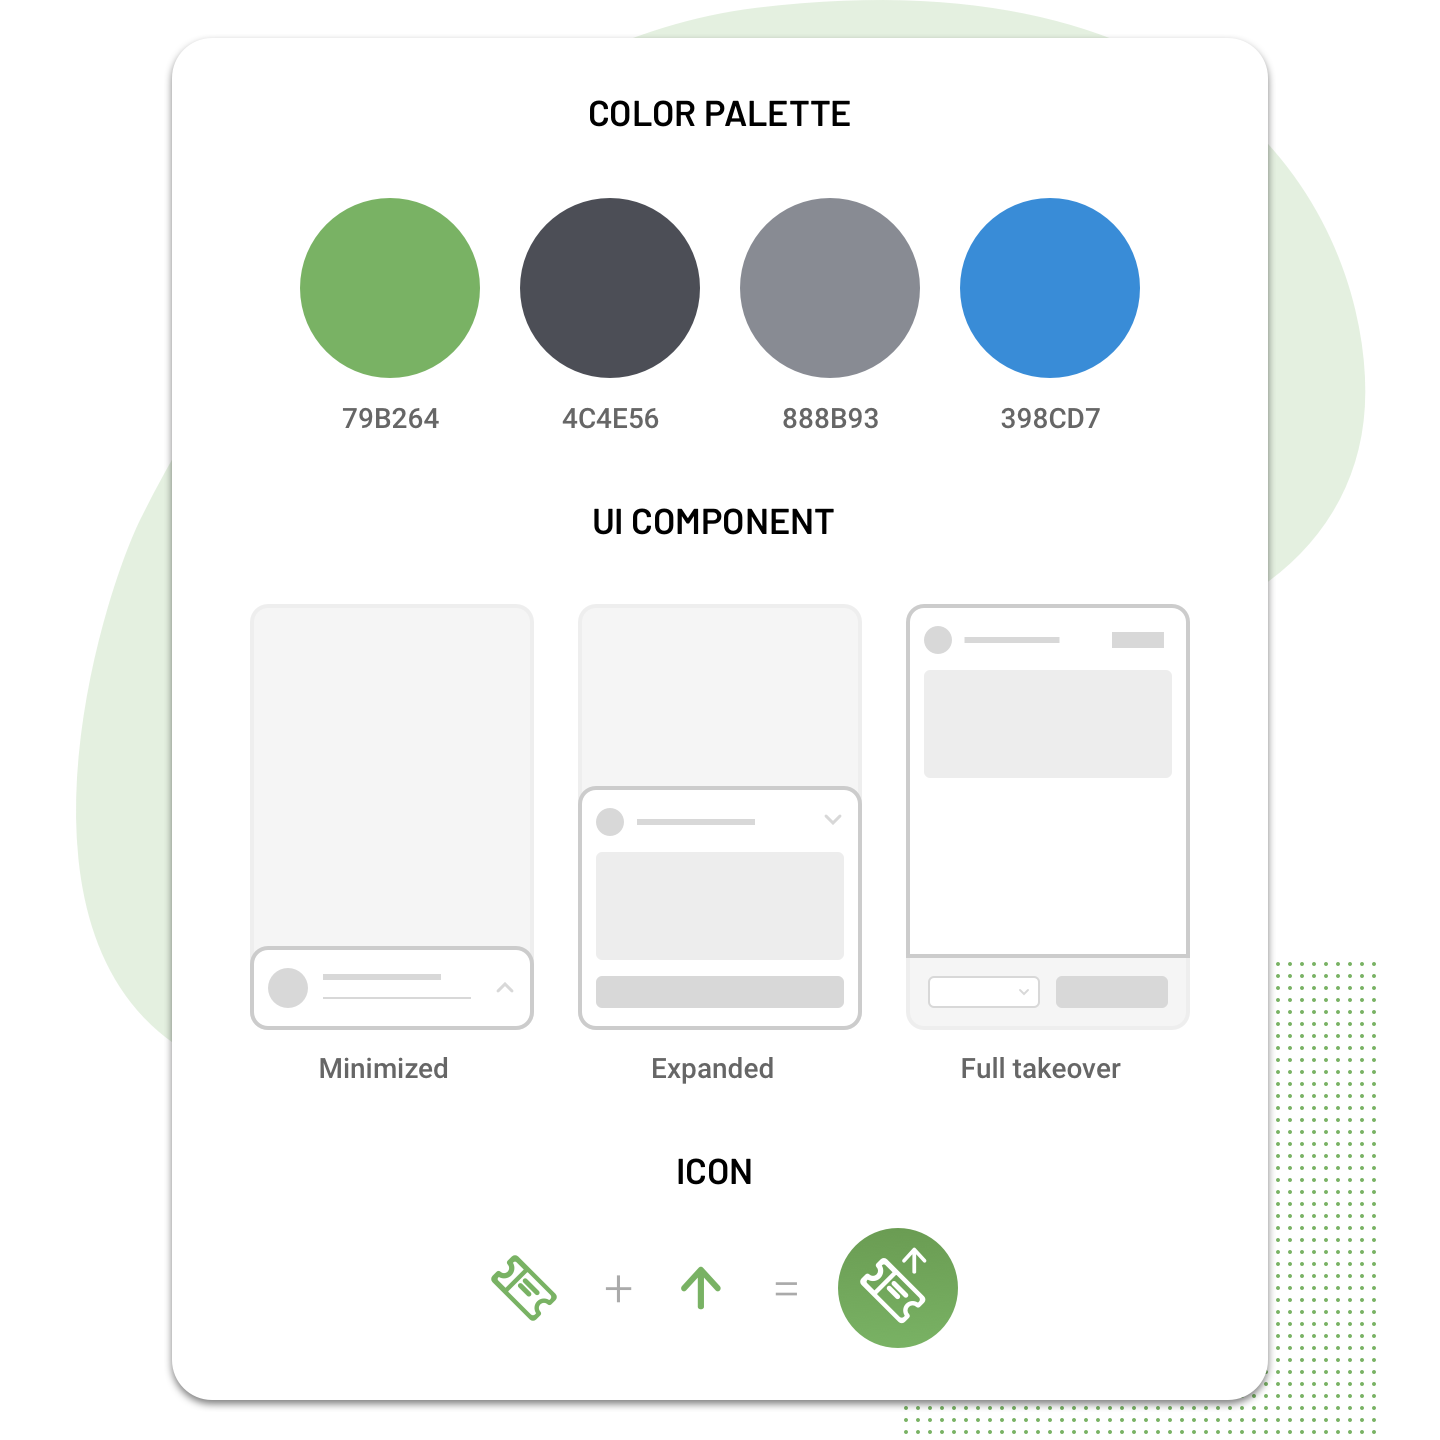 Visual Design Components: Color Palette, UI Component, and Icon